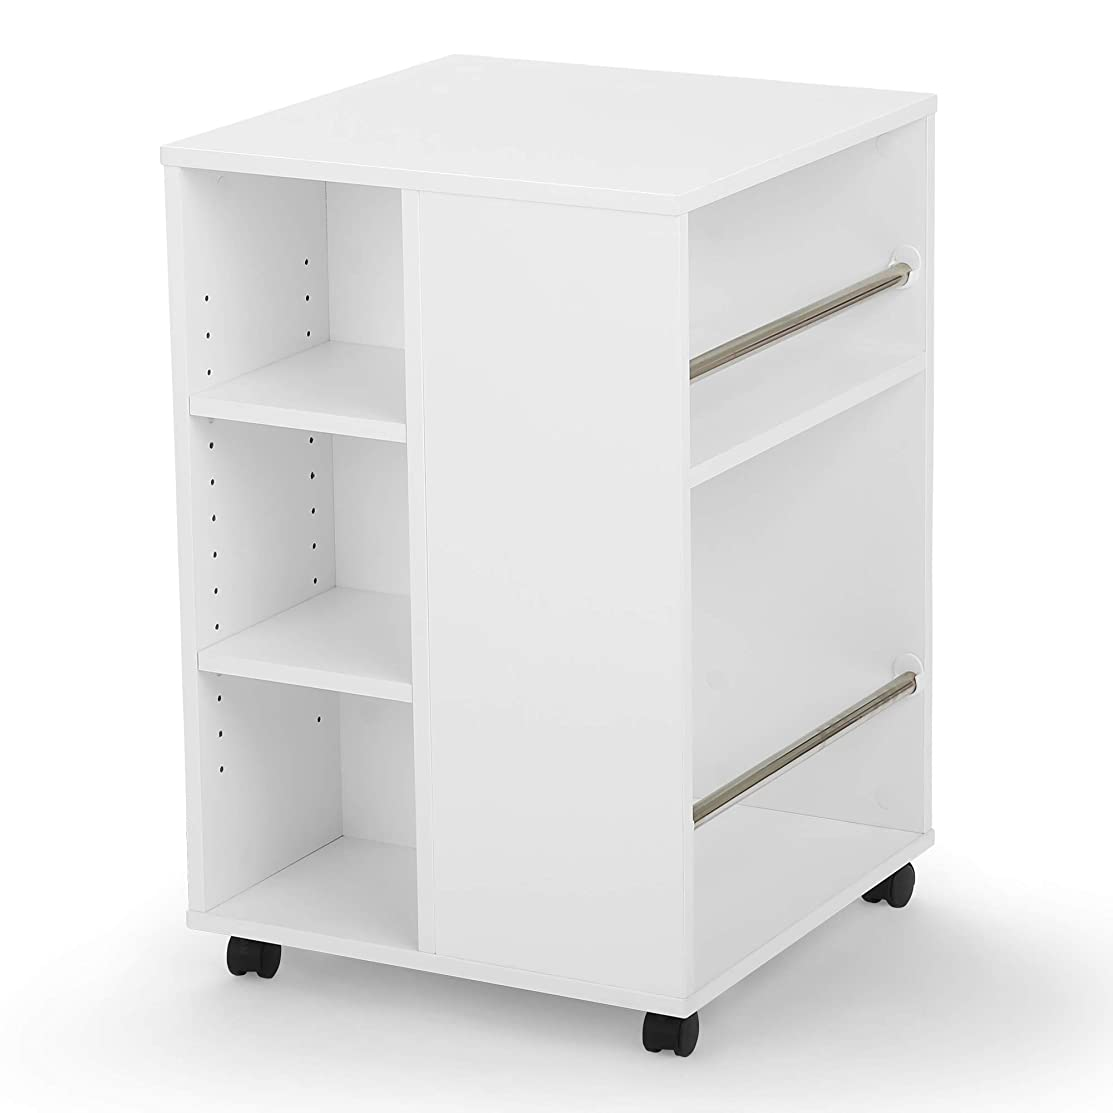 Arrow Mobile 4 Sided Sewing Accessories Storage Cube - White